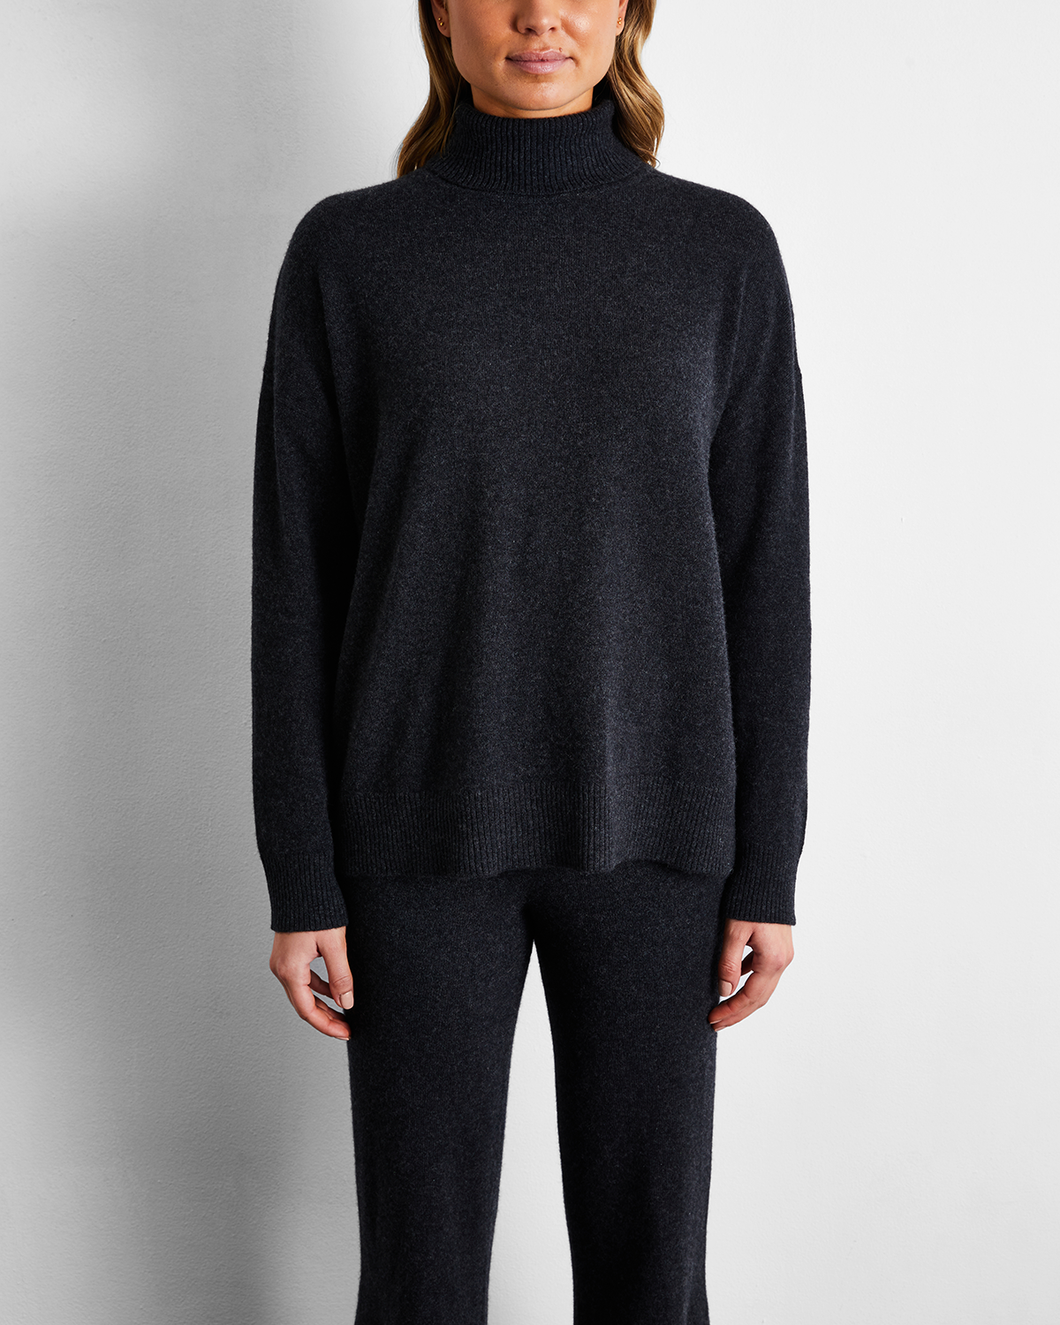 100% Cashmere Sweater in Charcoal